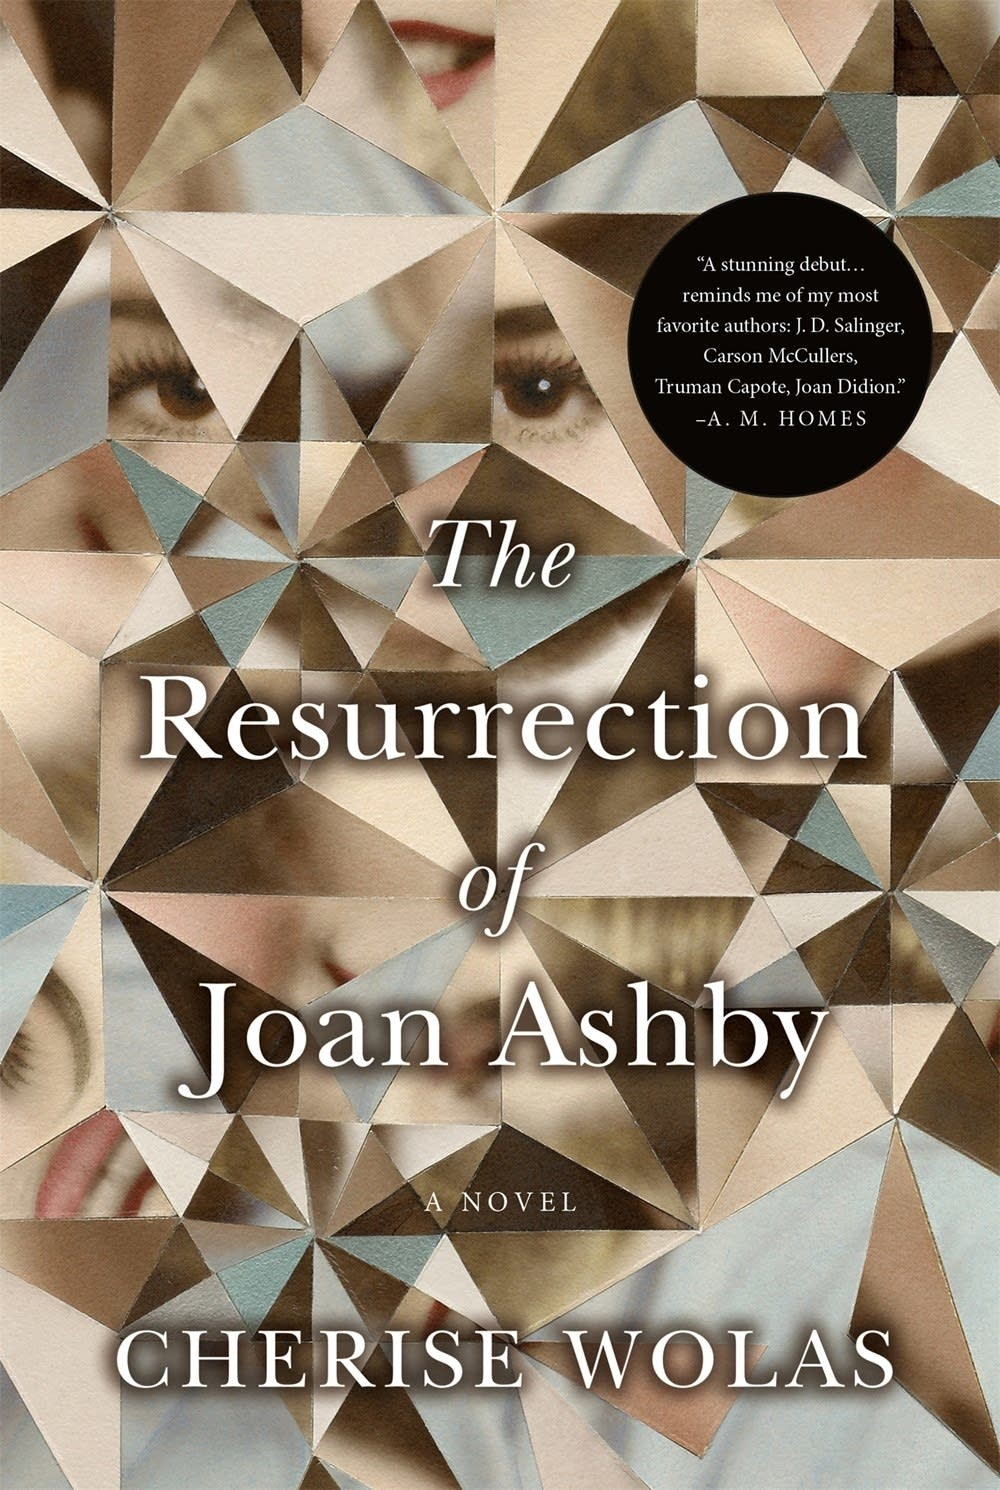 'The Resurrection of Joan Ashby' by Cherise Wolas